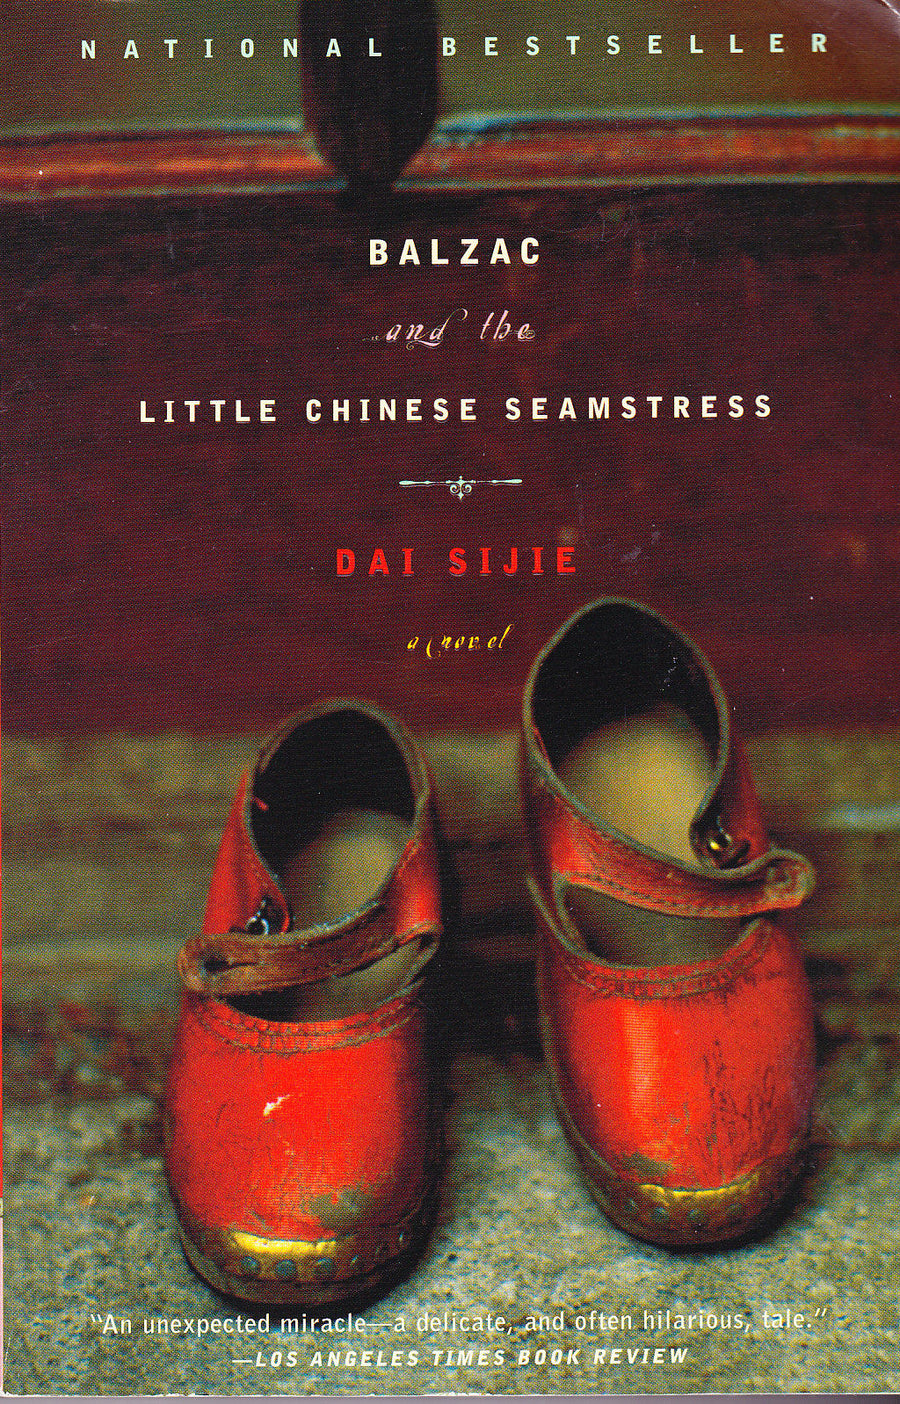 Balzac and the Little Chinese Seamtress